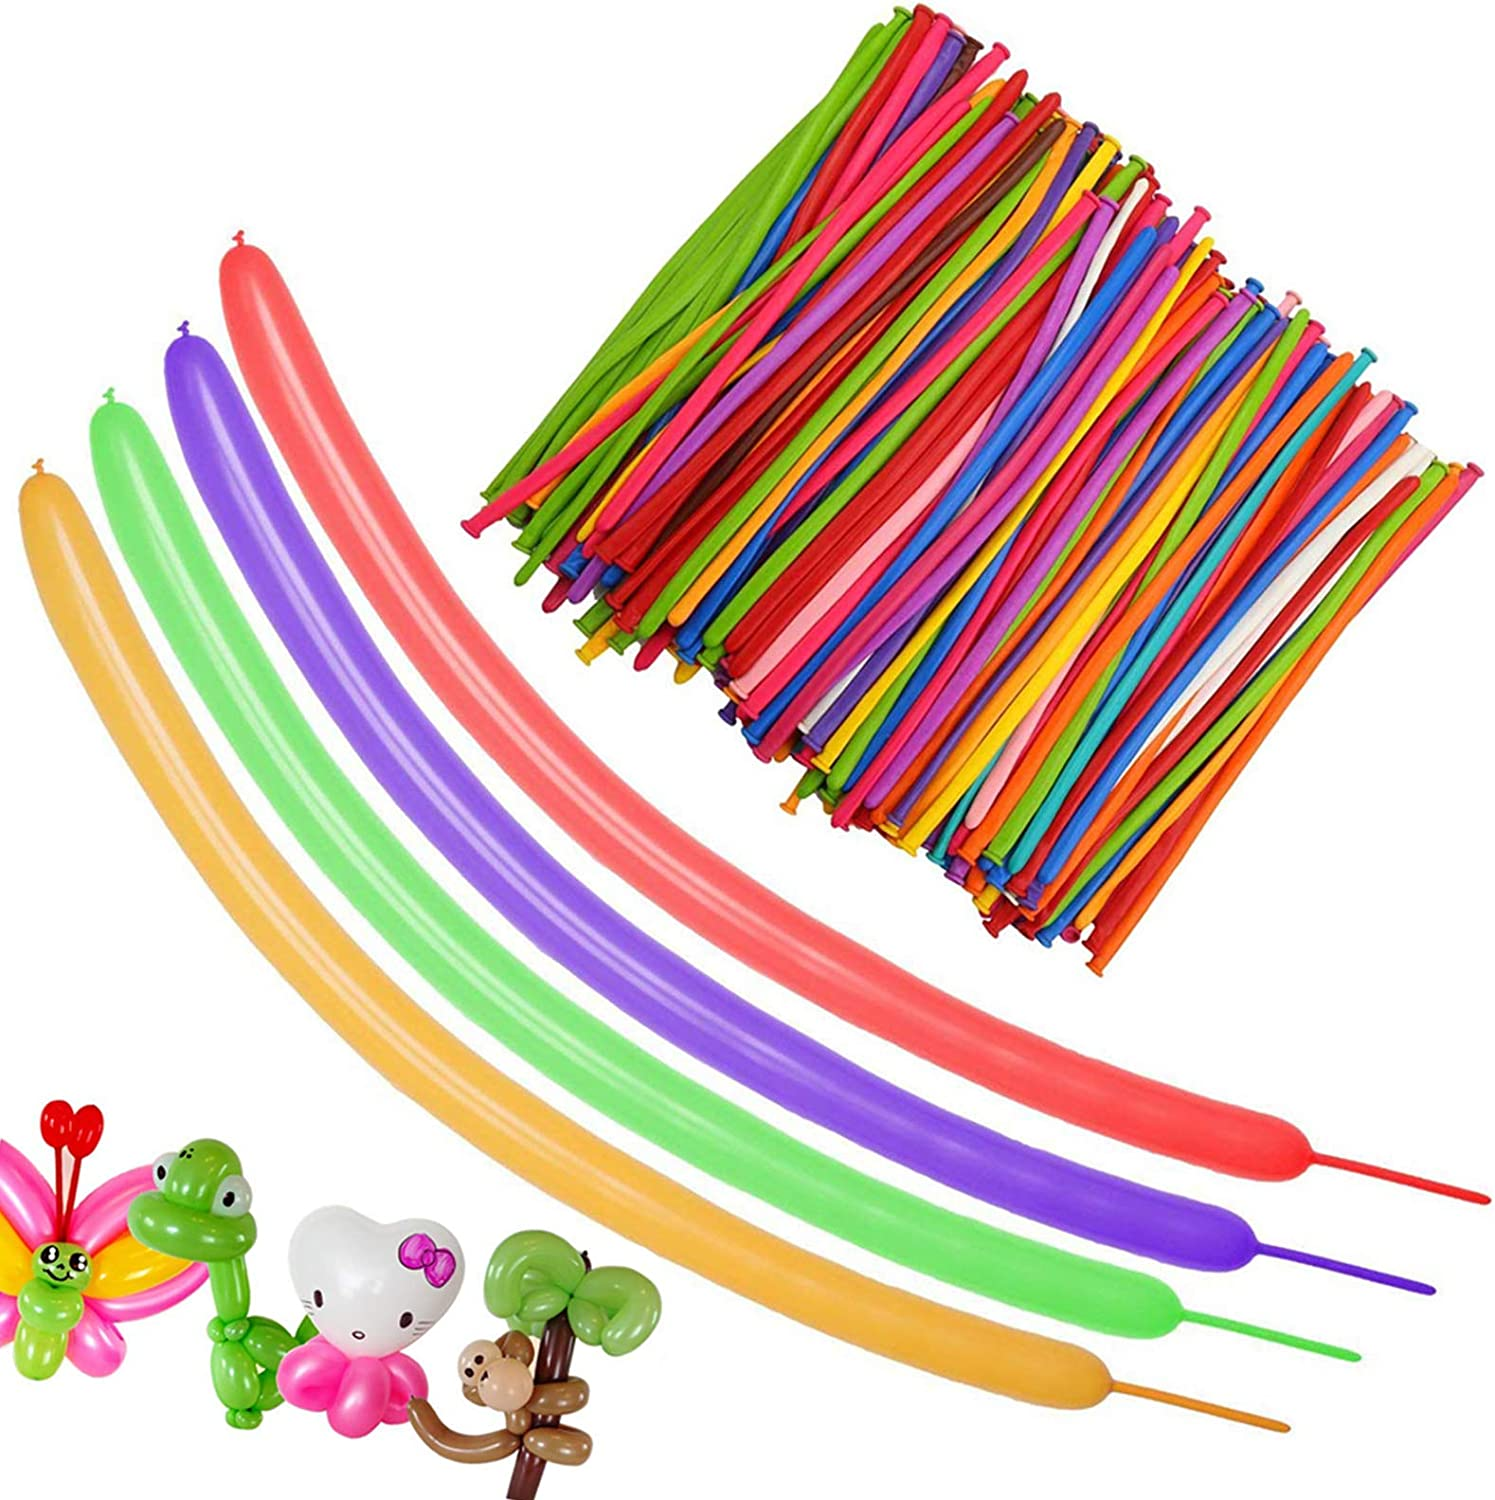 Long Balloons Twisting Magic Balloons 100pcs Sculpture Twist Balloon Animal Balloons Kit 260q Diy Balloons for Birthday kids Wedding Party Decorations